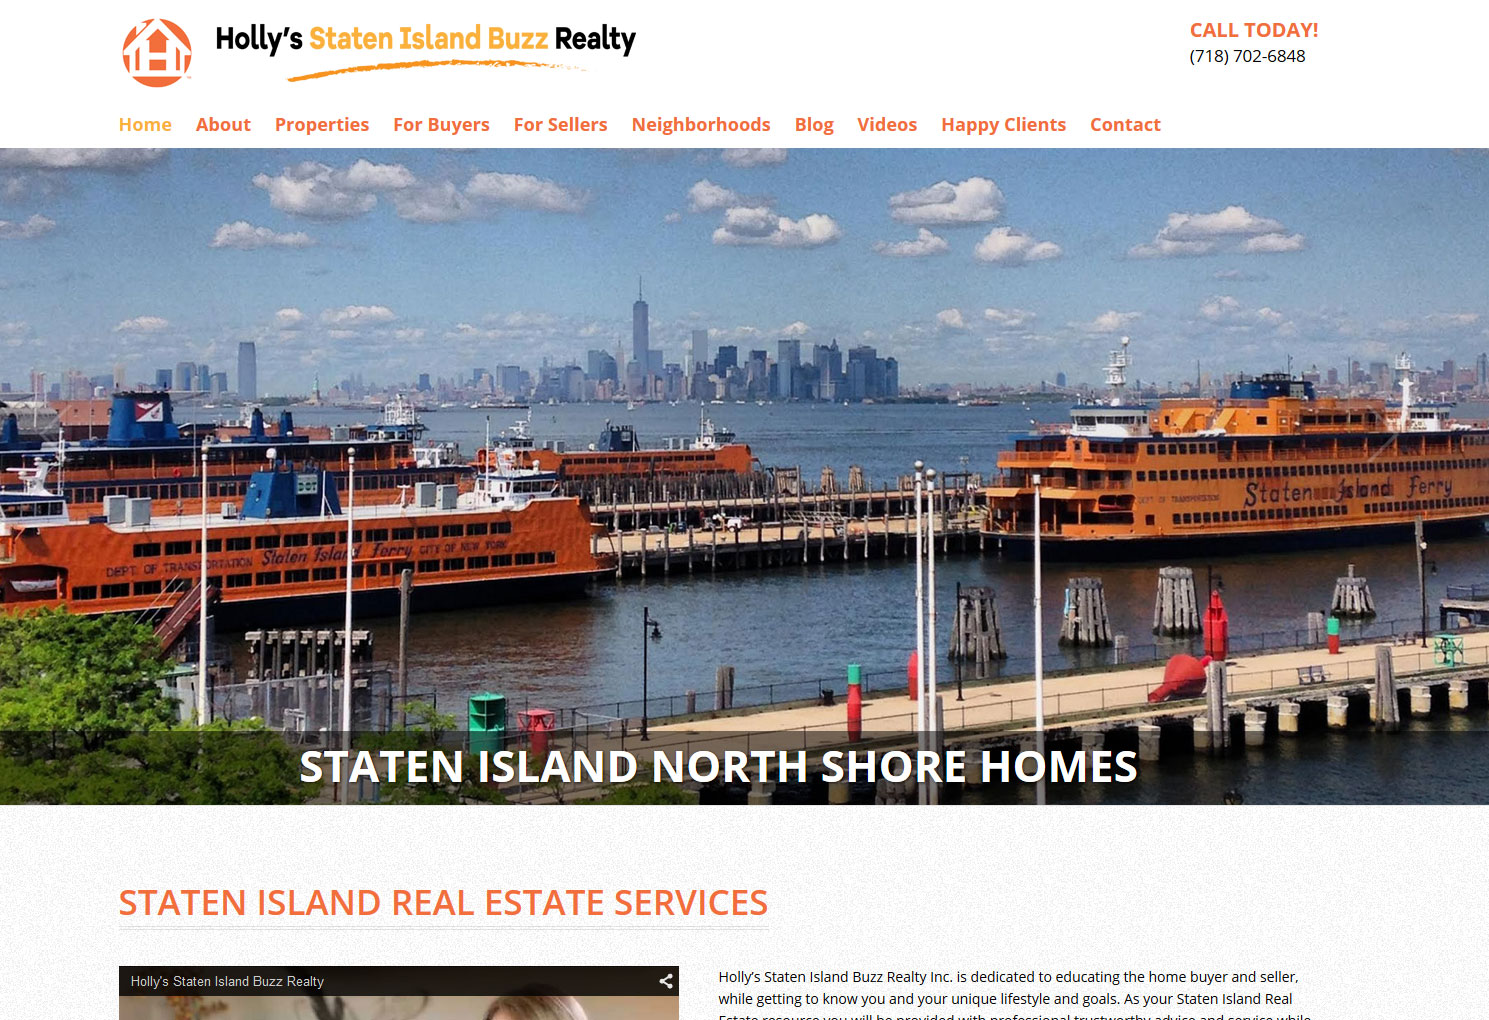 Holly's Staten Island Buzz Realty